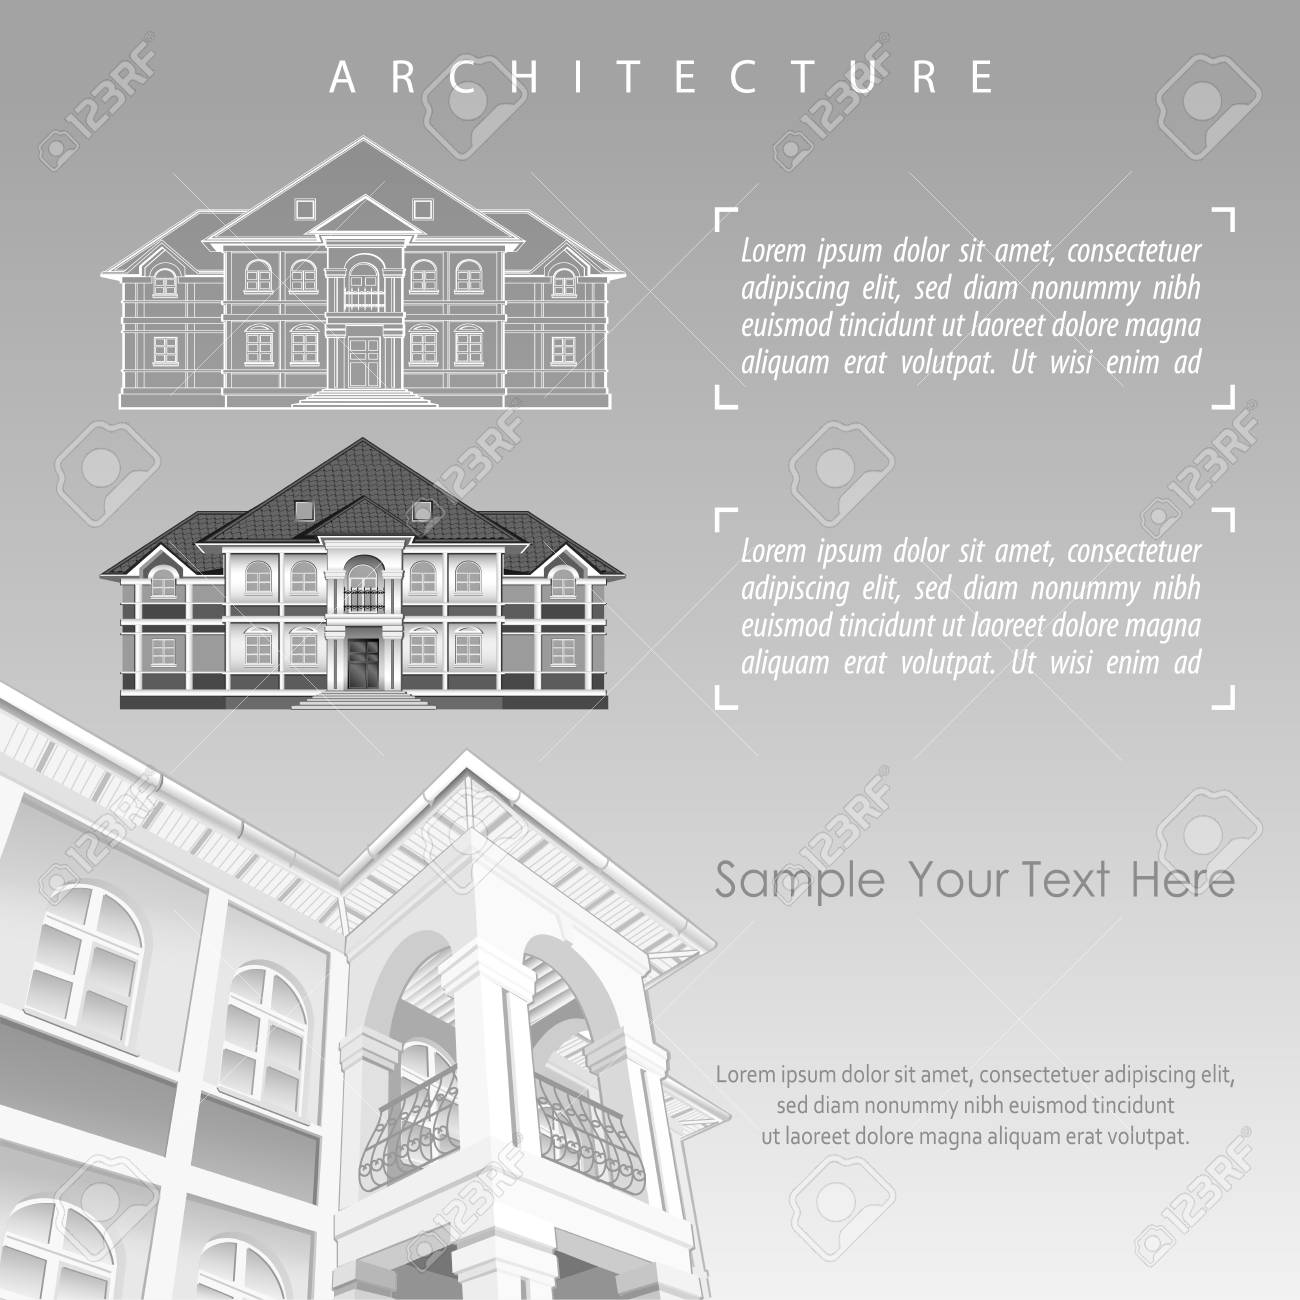 Architectural Plan Of Building Facade With Terrace Cottage